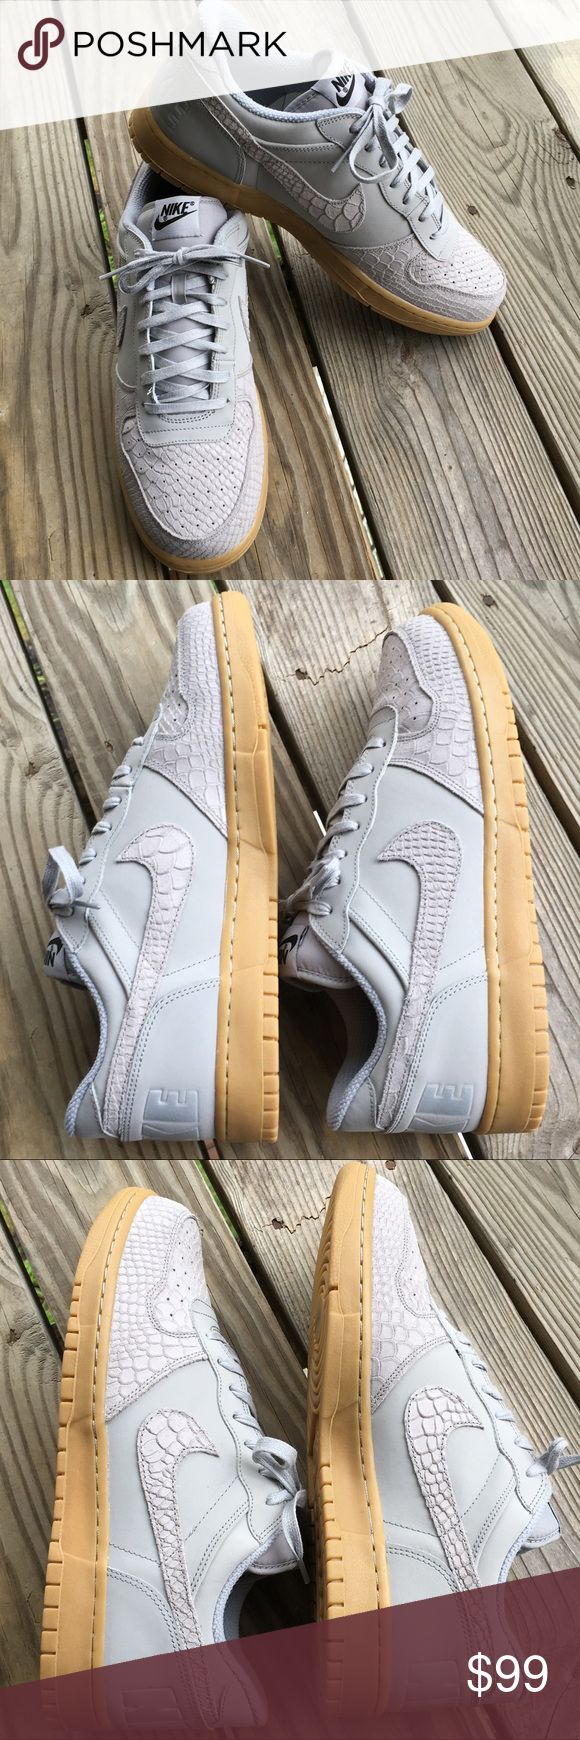 🆕Men's Nike Grey Reptile Air Force 1 Lo NWOB Brand new without box! Nike Reptile Air Force One Lows with Bubblegum sole. Wolf Pack Grey Reptile. Size 12. Also available in Size 11.5. Suede and leather upper. Super hot! Very small and unnoticeable mark as shown in third to last picture. Purchased this way. ❌NO TRADES❌NO LOWBALLING❌NO MODELING❌ Nike Shoes Sneakers